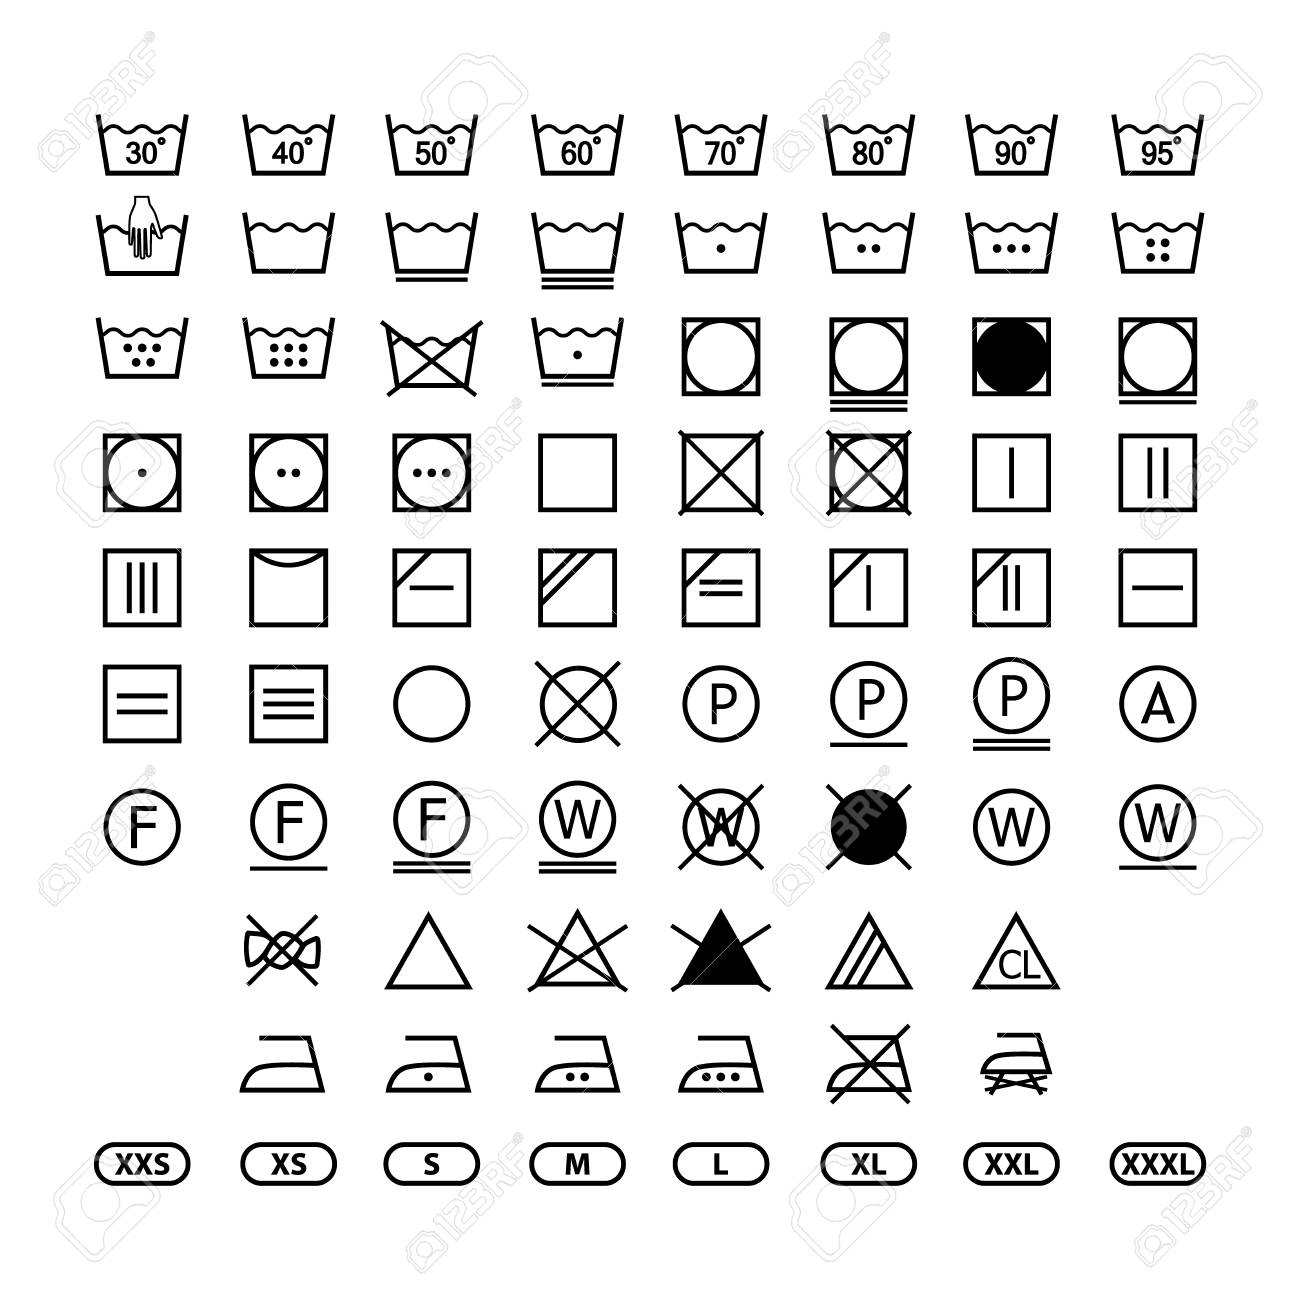 Care Instruction Symbols For Clothing Sample User Manual